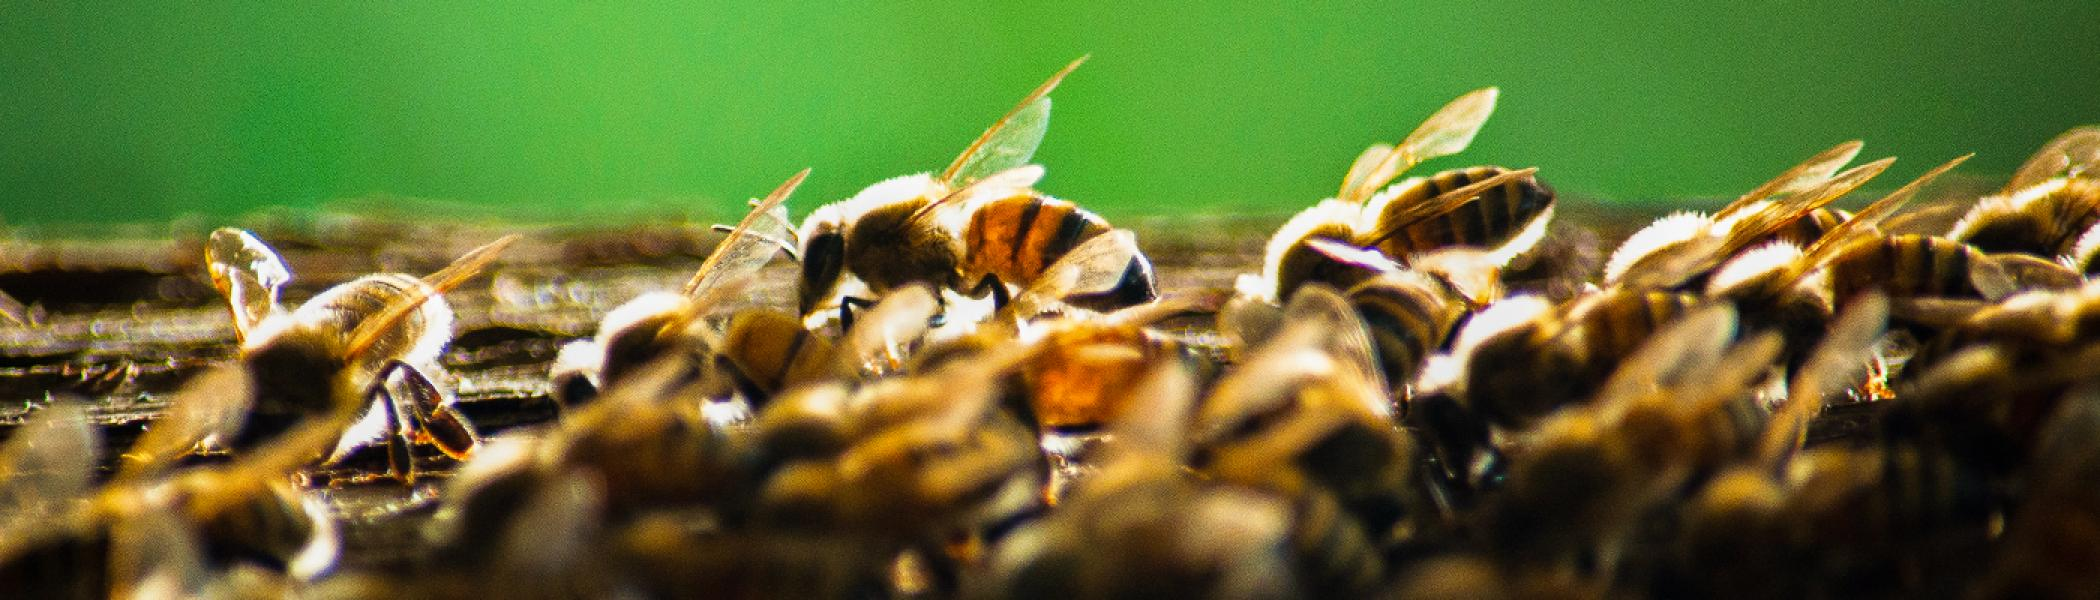 A closeup view of bees on a hive against a blurry green background